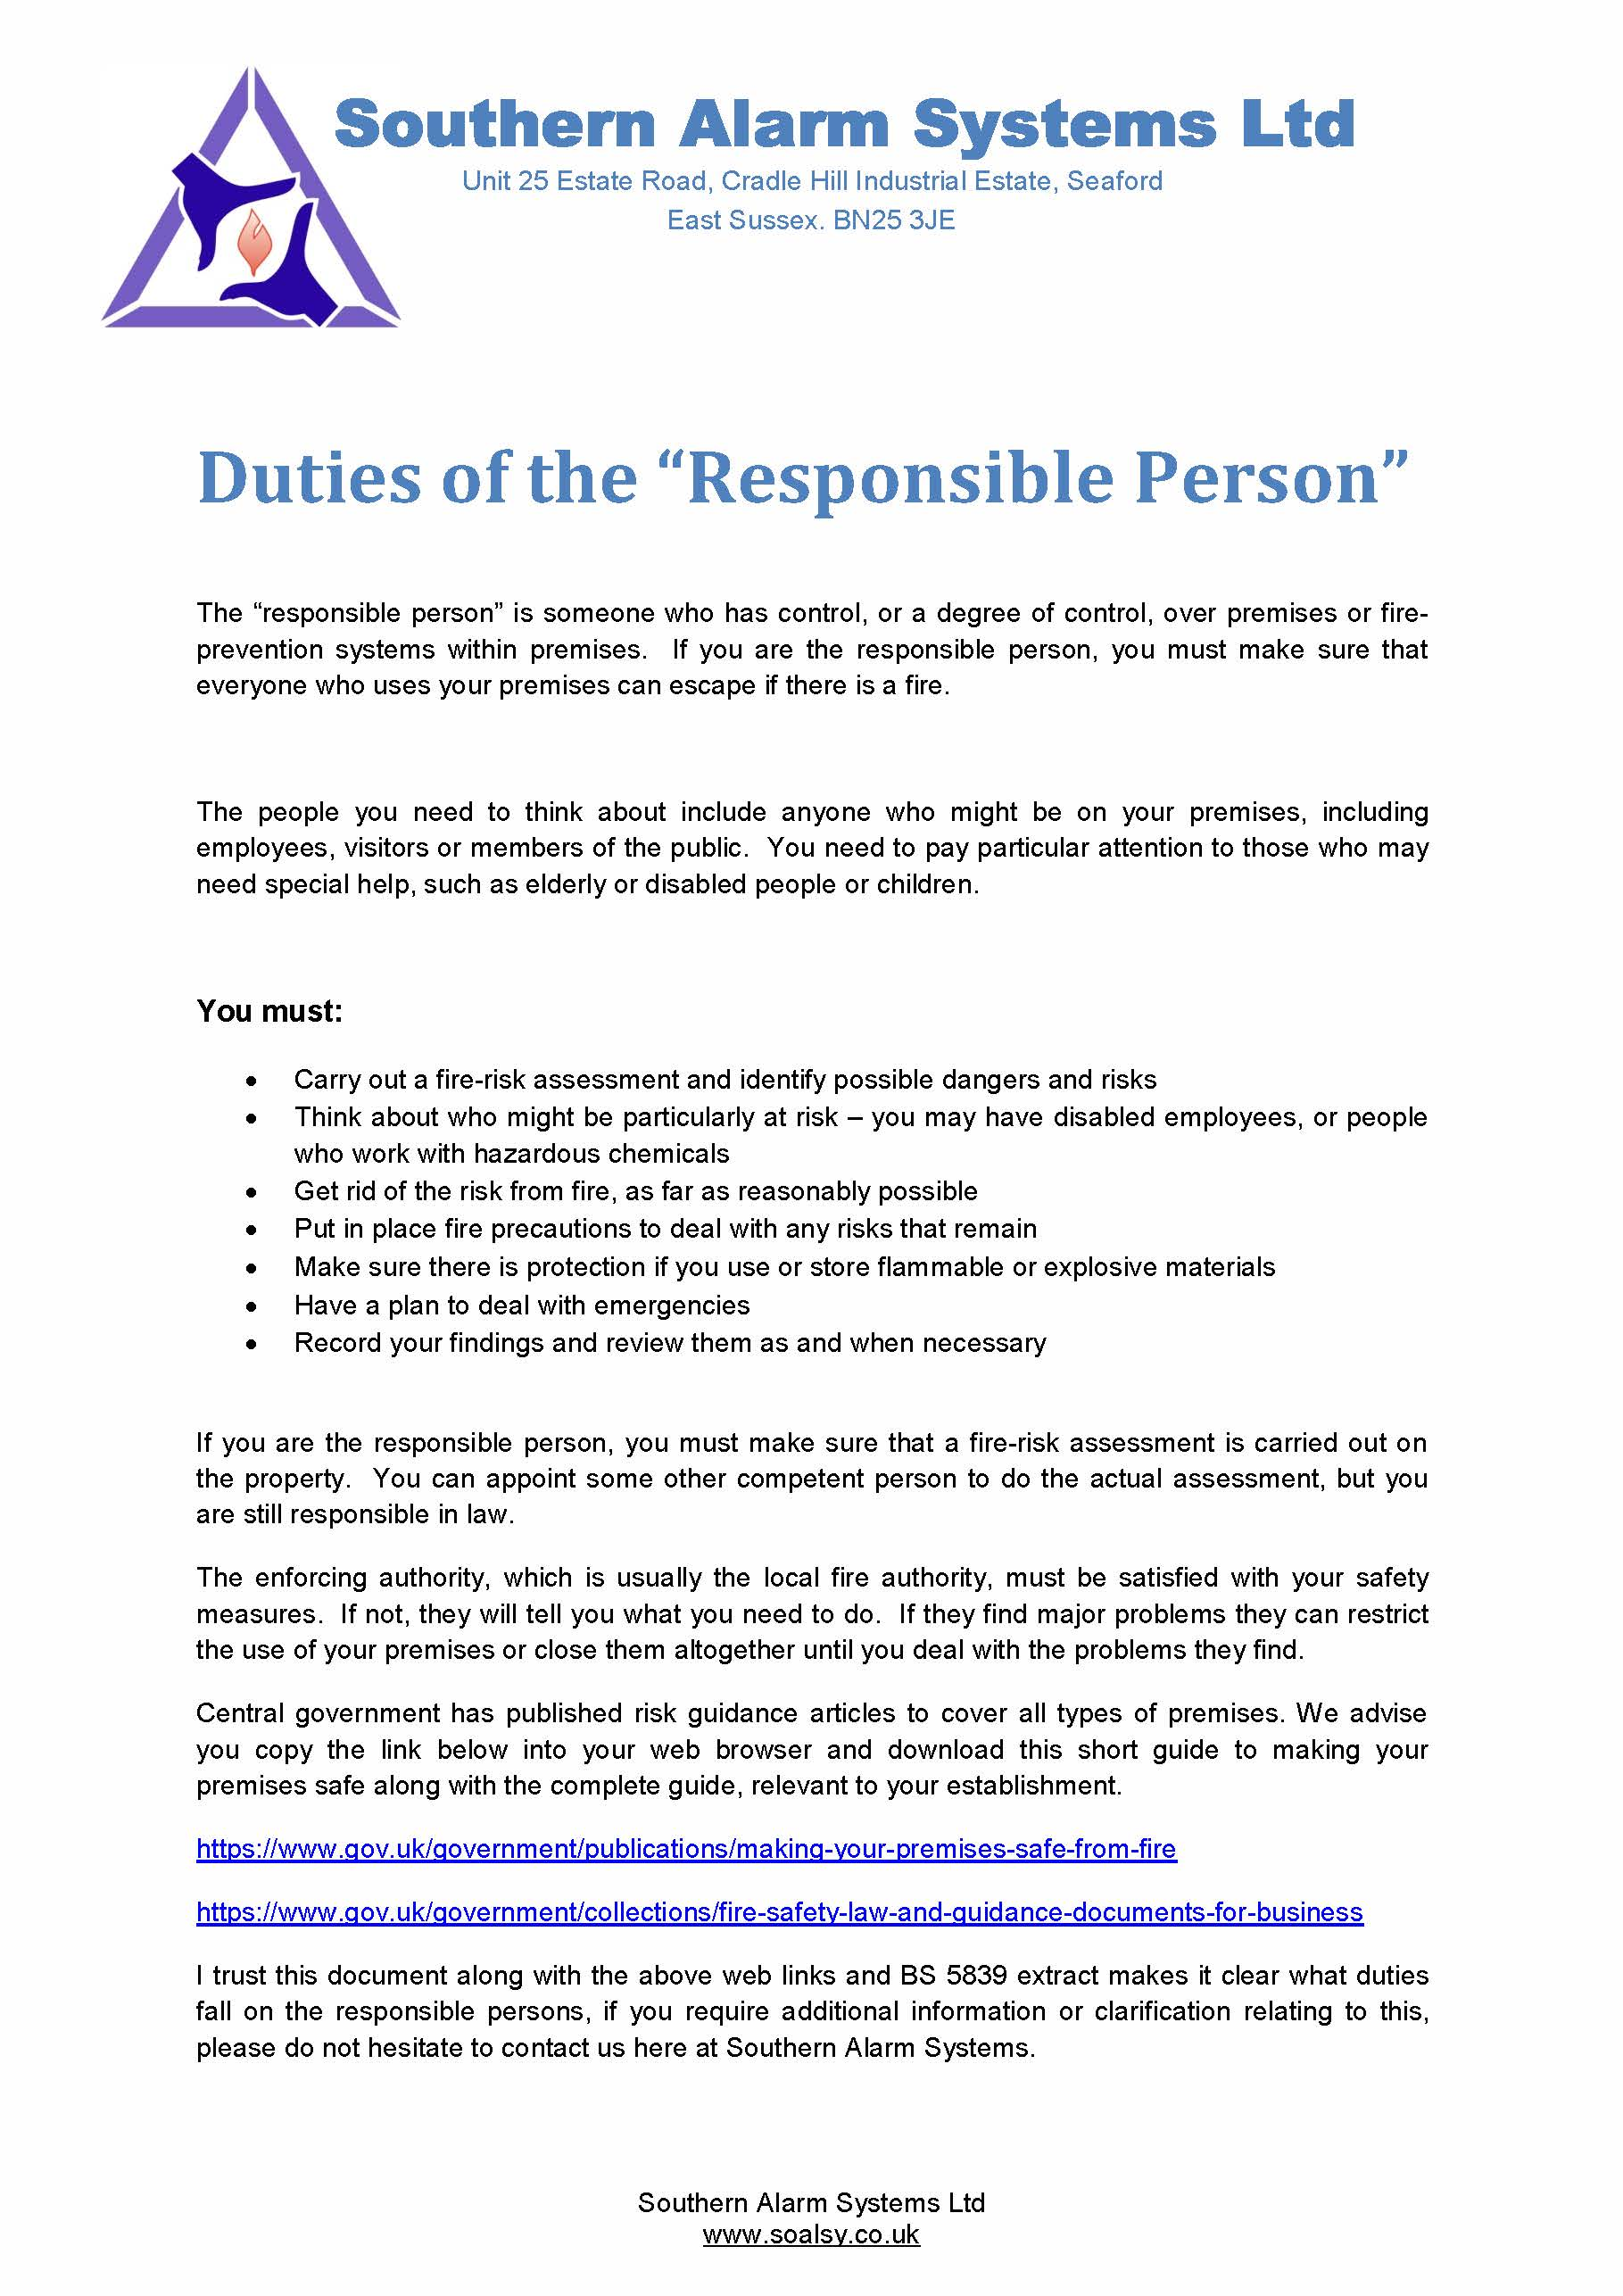 Duties of the Responsible Person